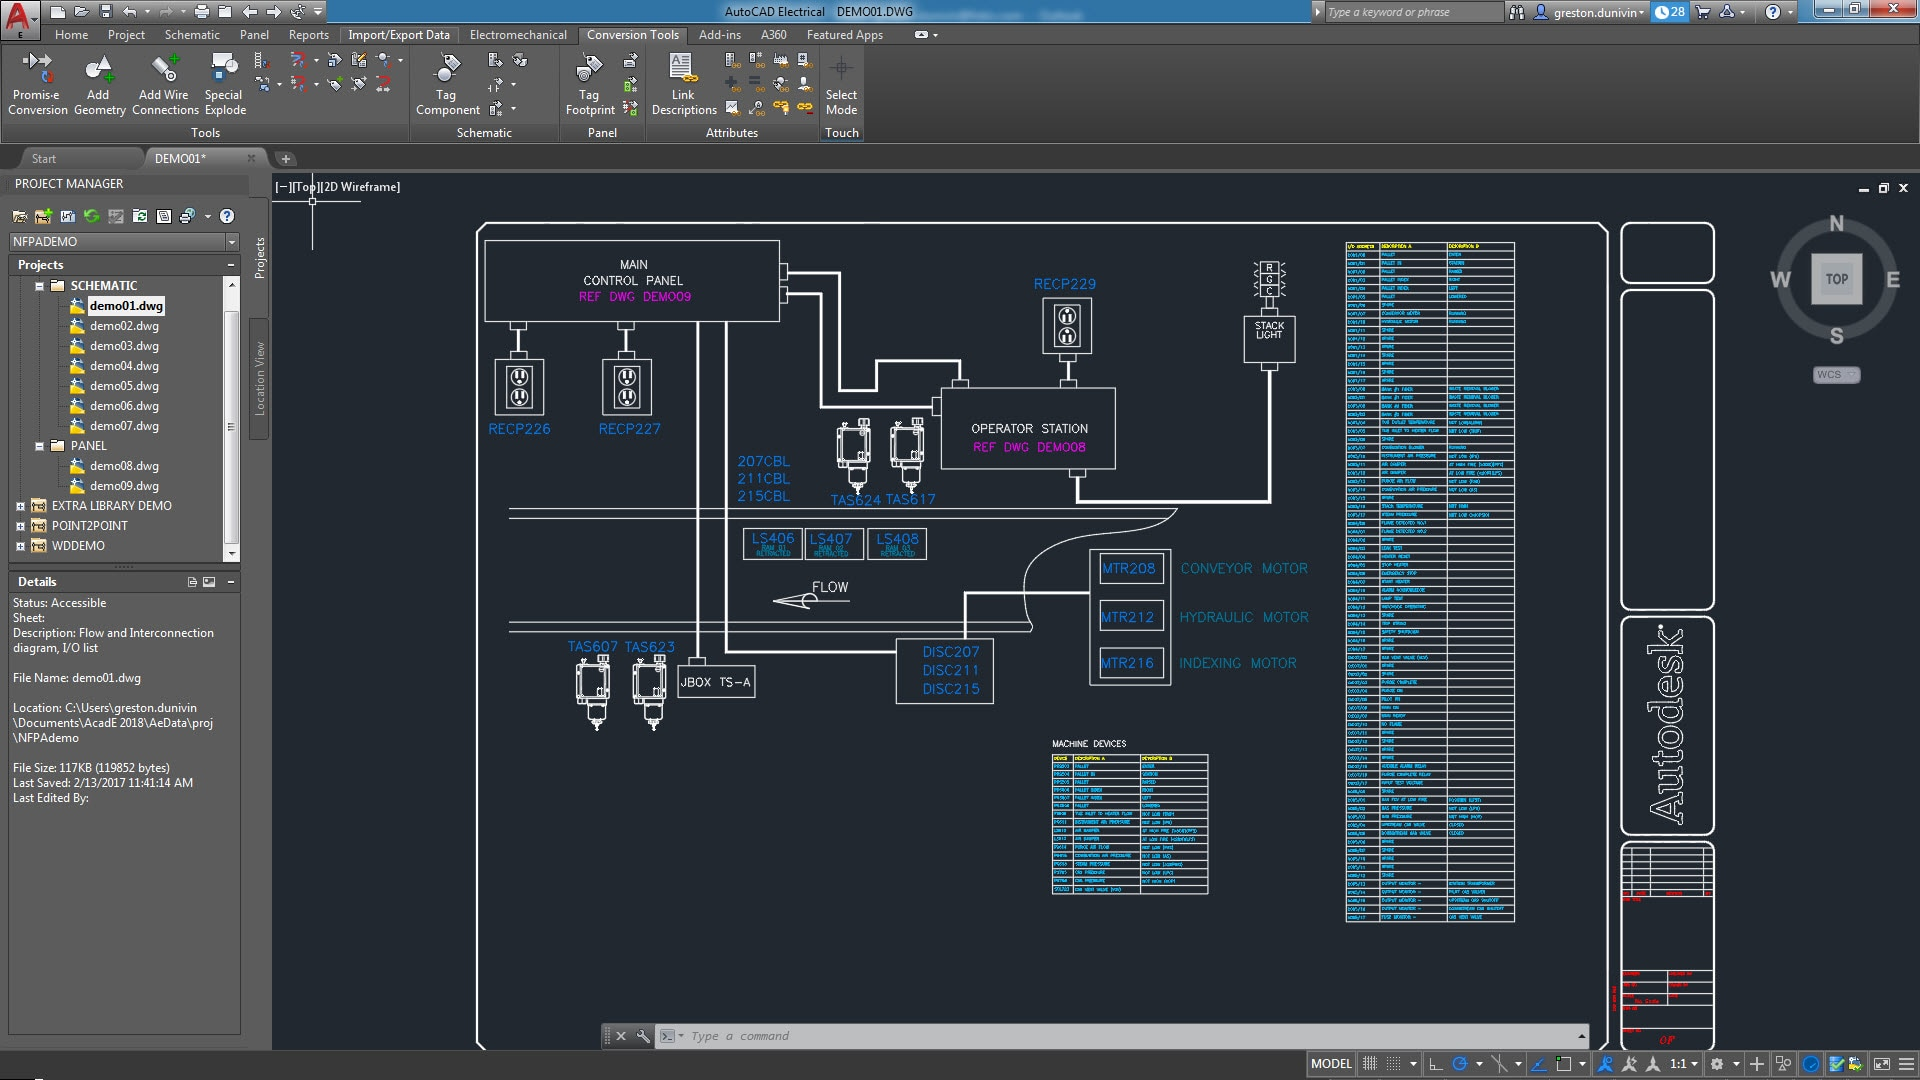 autocad electrical toolset electrical design software autodeskthe autocad electrical toolset enables customer and supplier collaboration